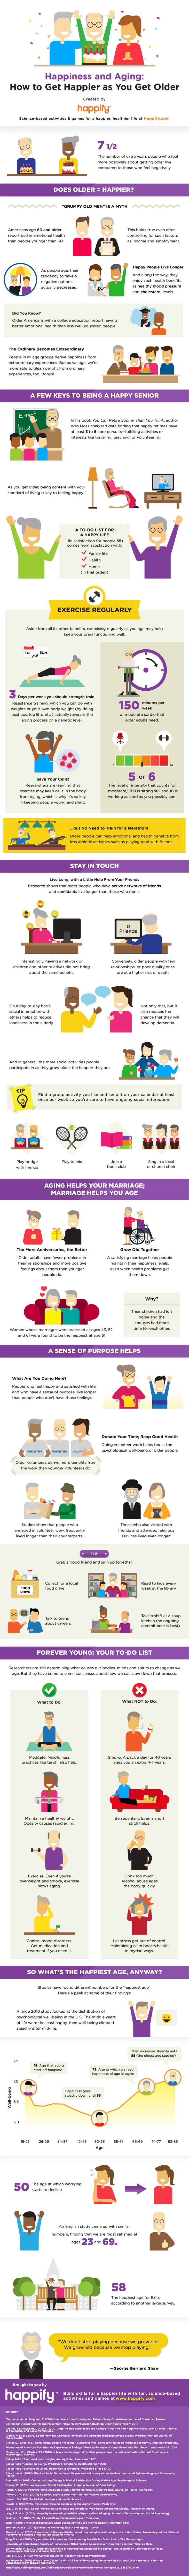 How to Be a Happy and Contented Senior: Science-Backed Tips and Strategies - Infographic